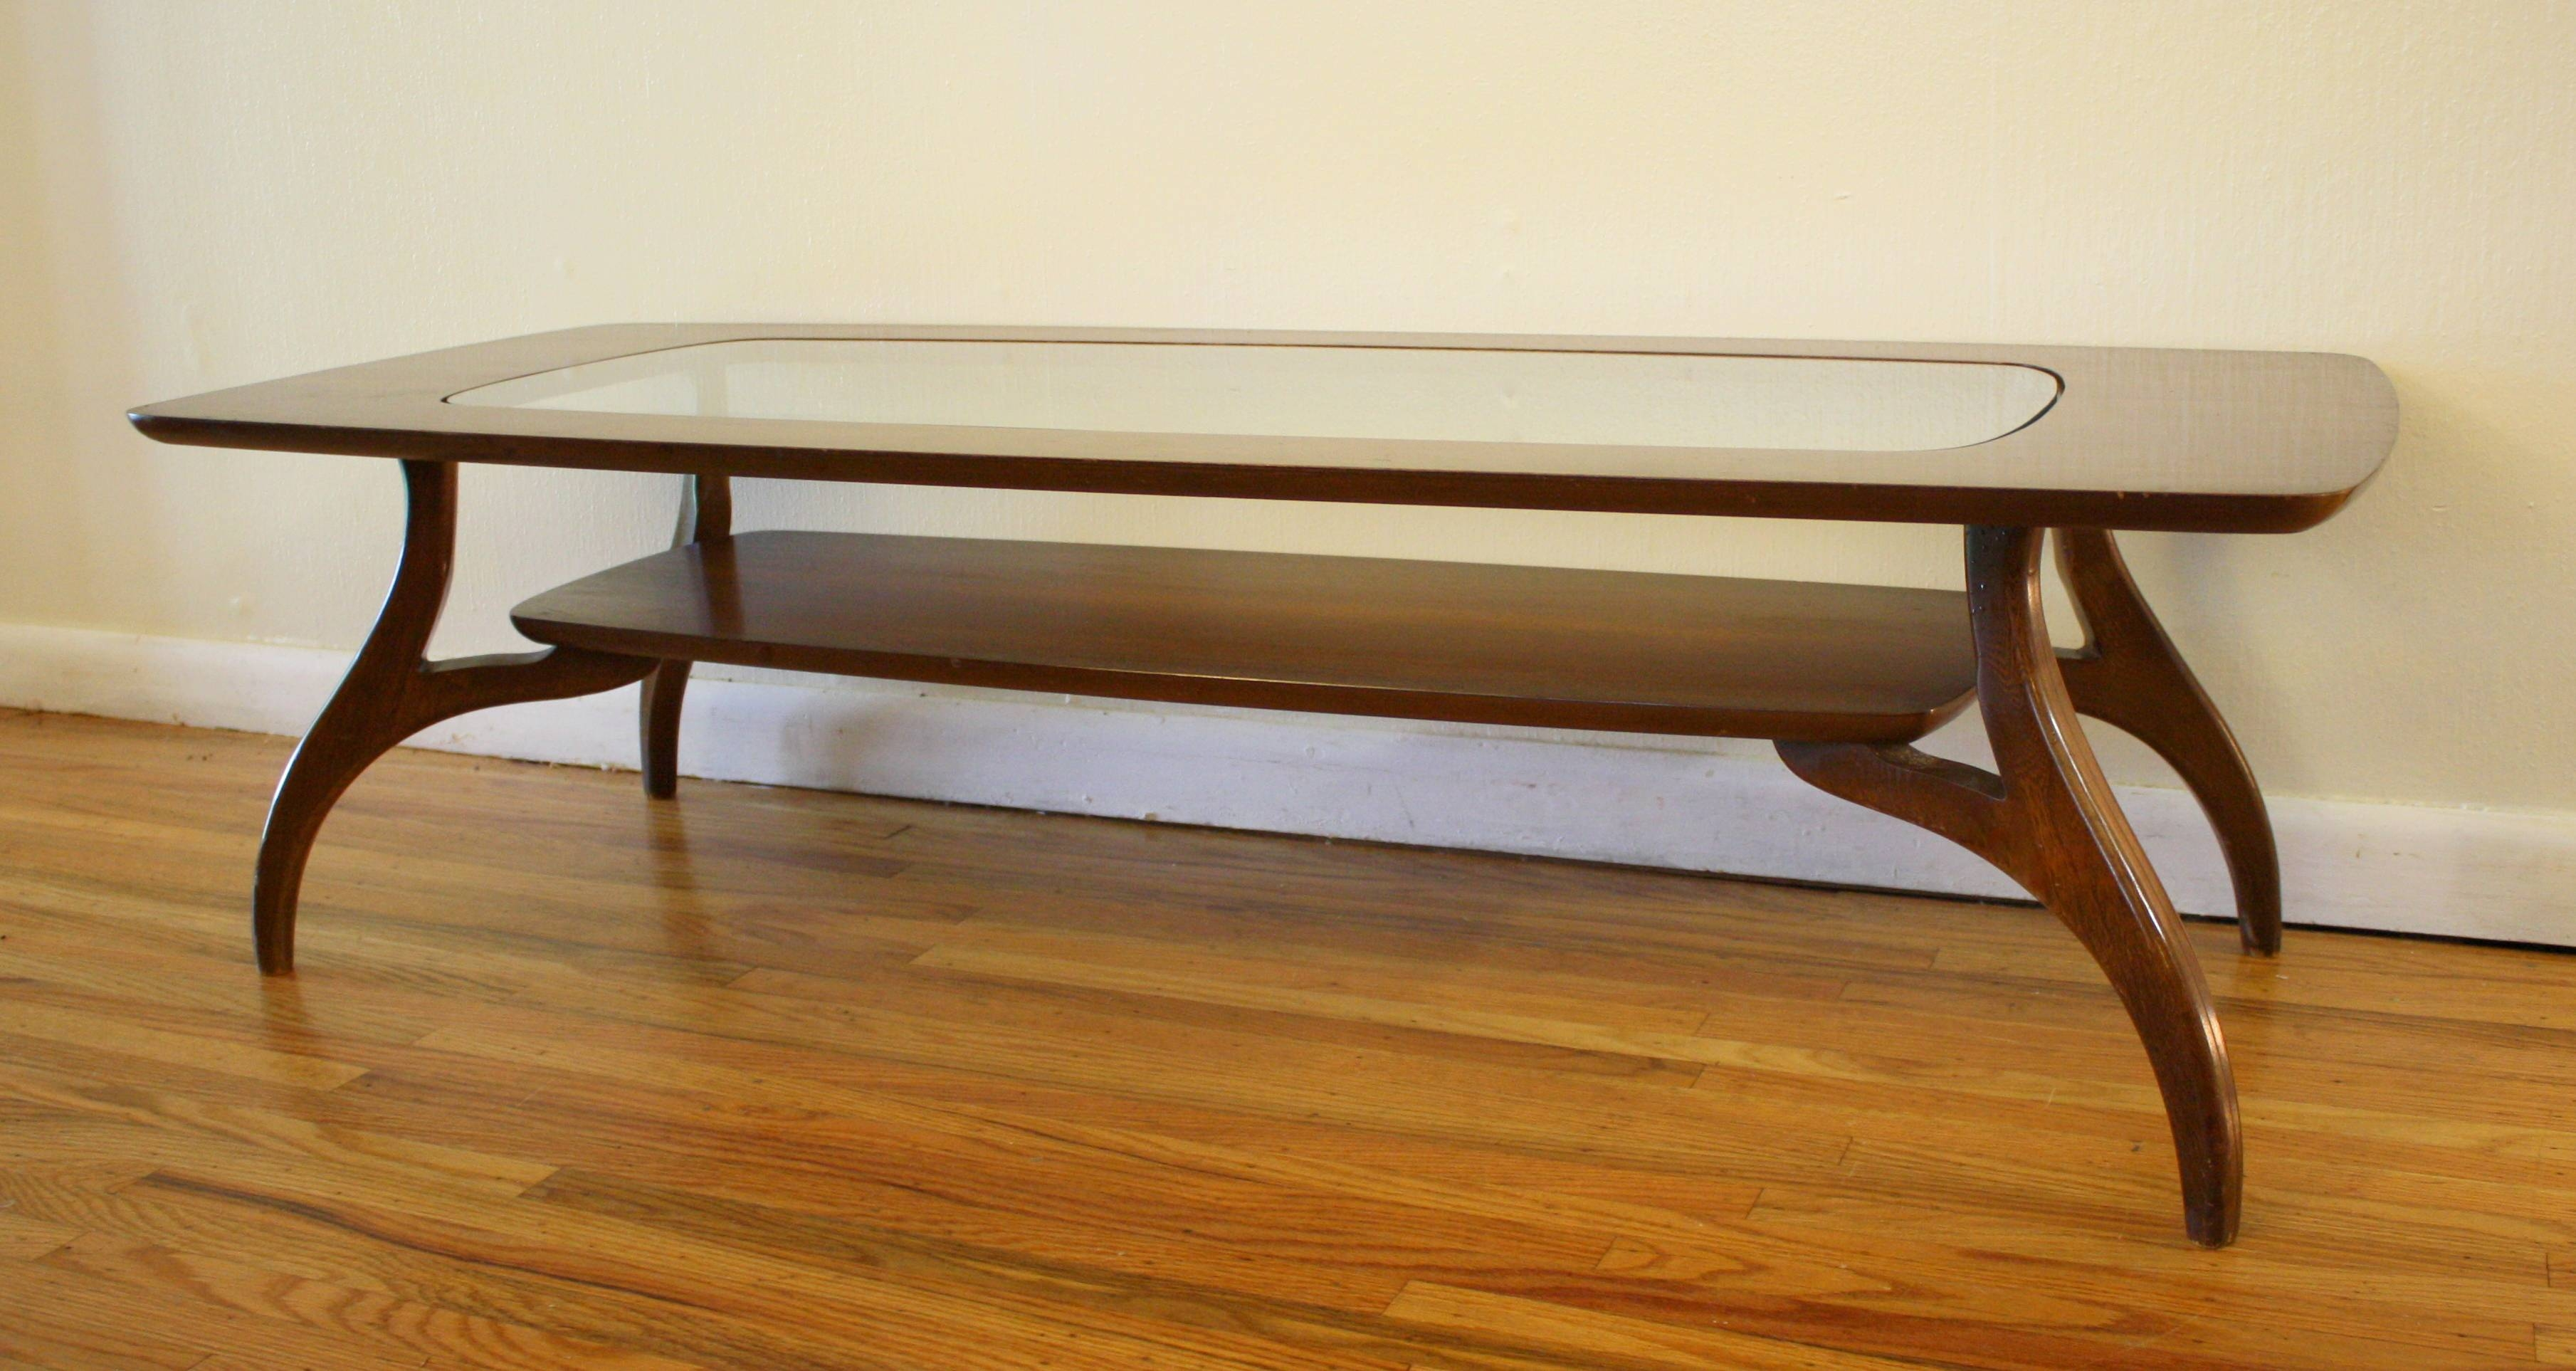 Glass Coffee Tables: Incredible Traditional Glass Top Coffee Table for Glass Topped Coffee Tables (Image 6 of 15)